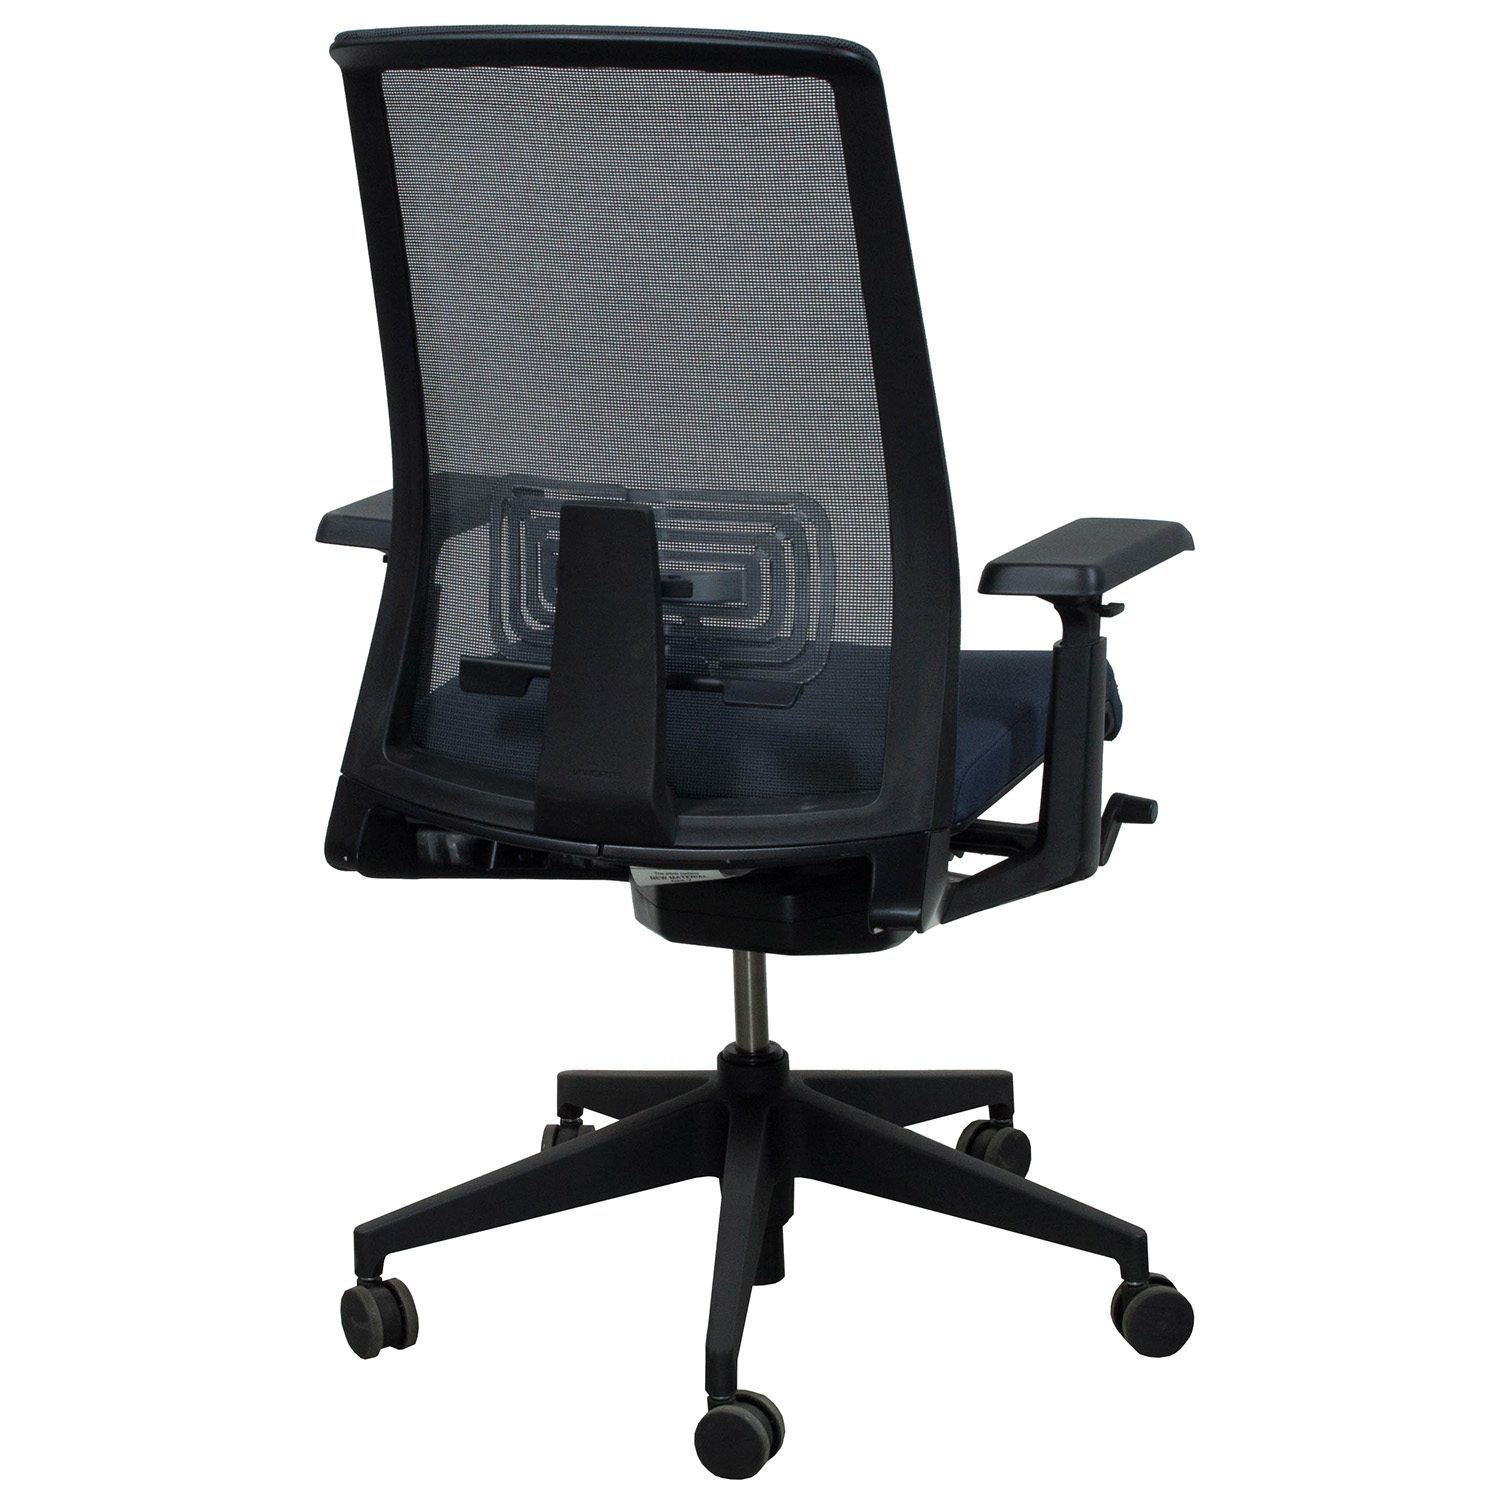 Haworth fice Chairs Zody Zody Desk Chair Whitesweep